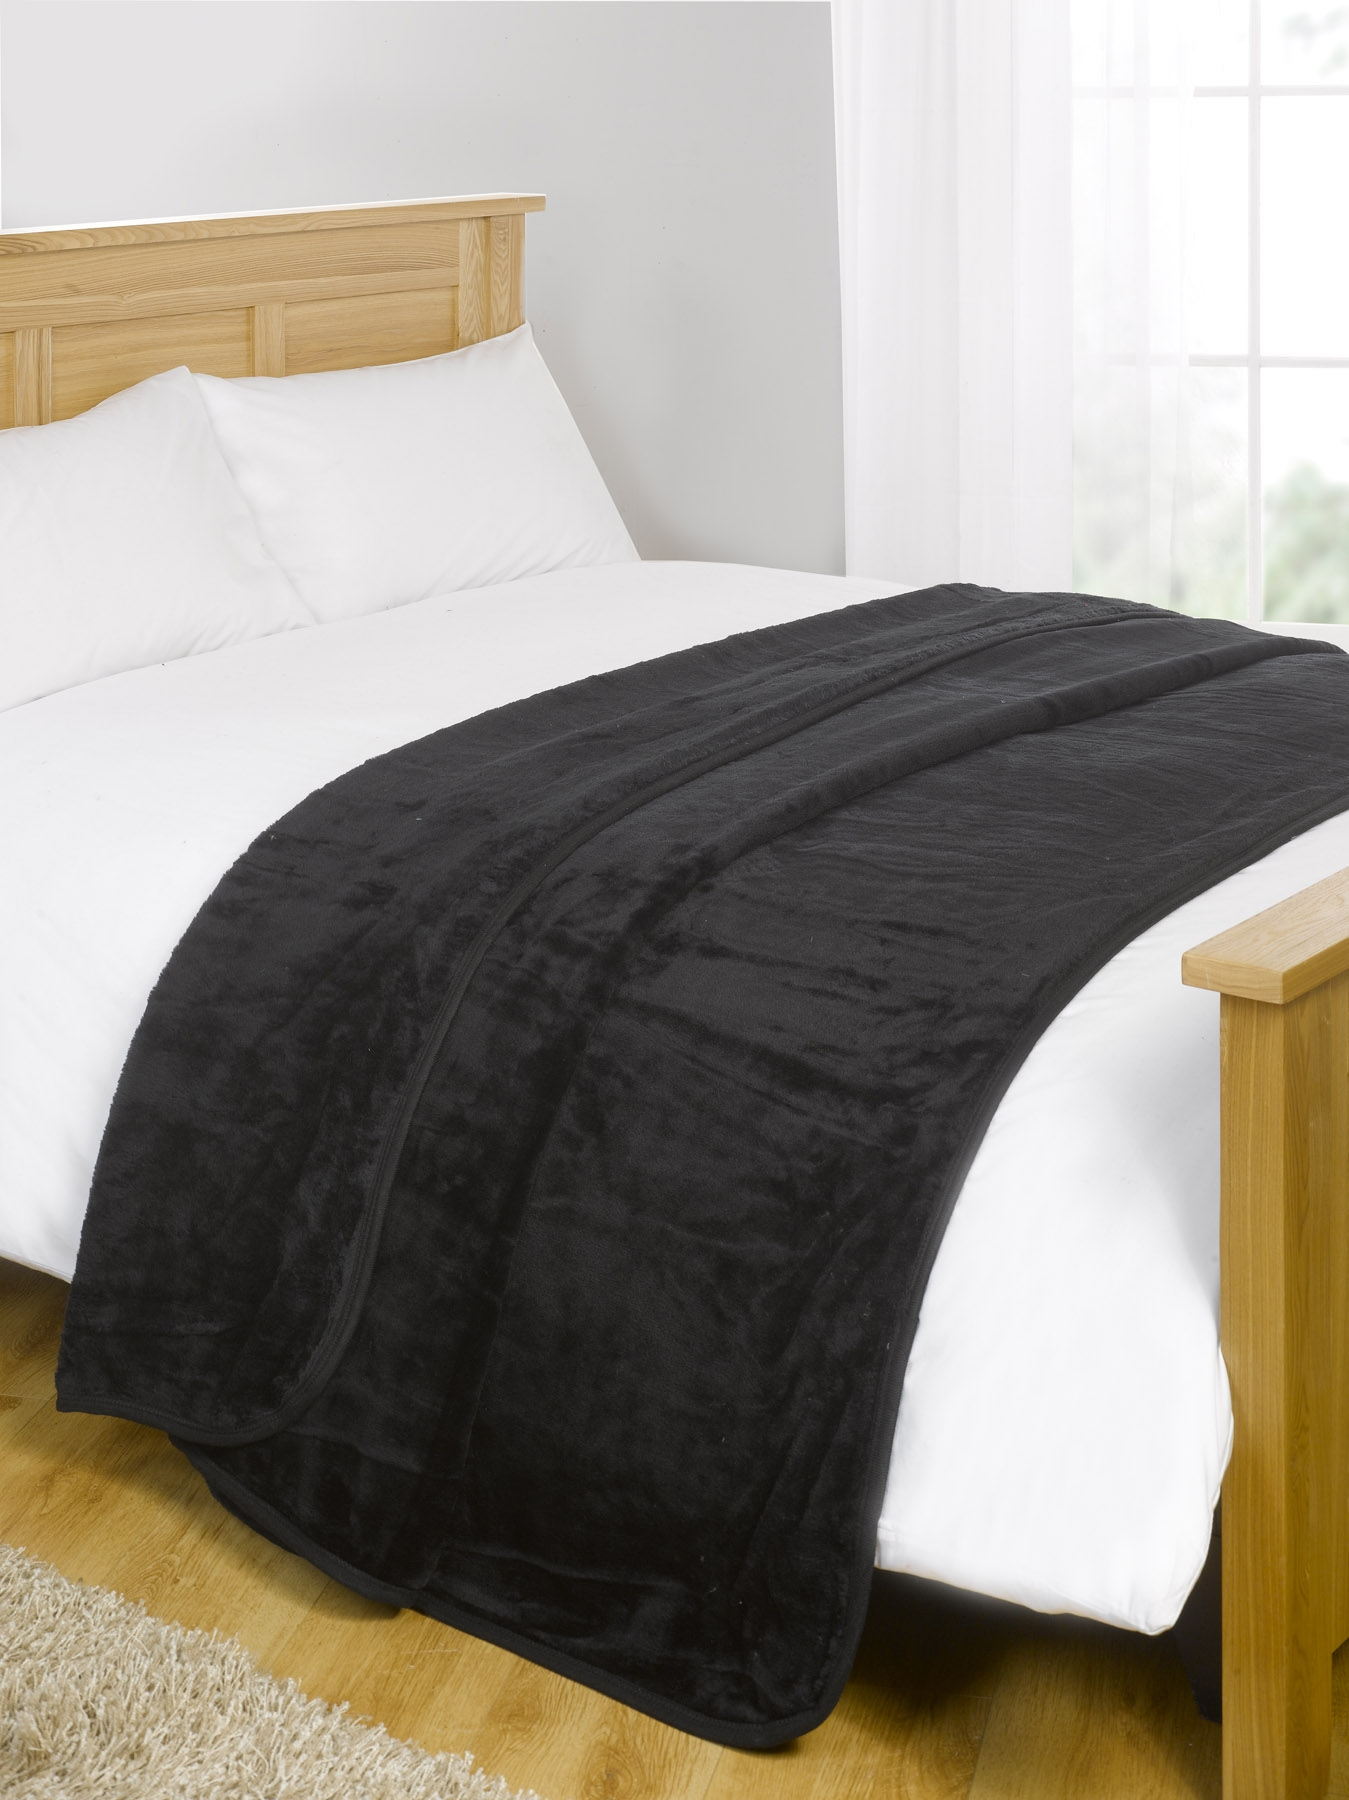 Single Bed Fleece Blanket